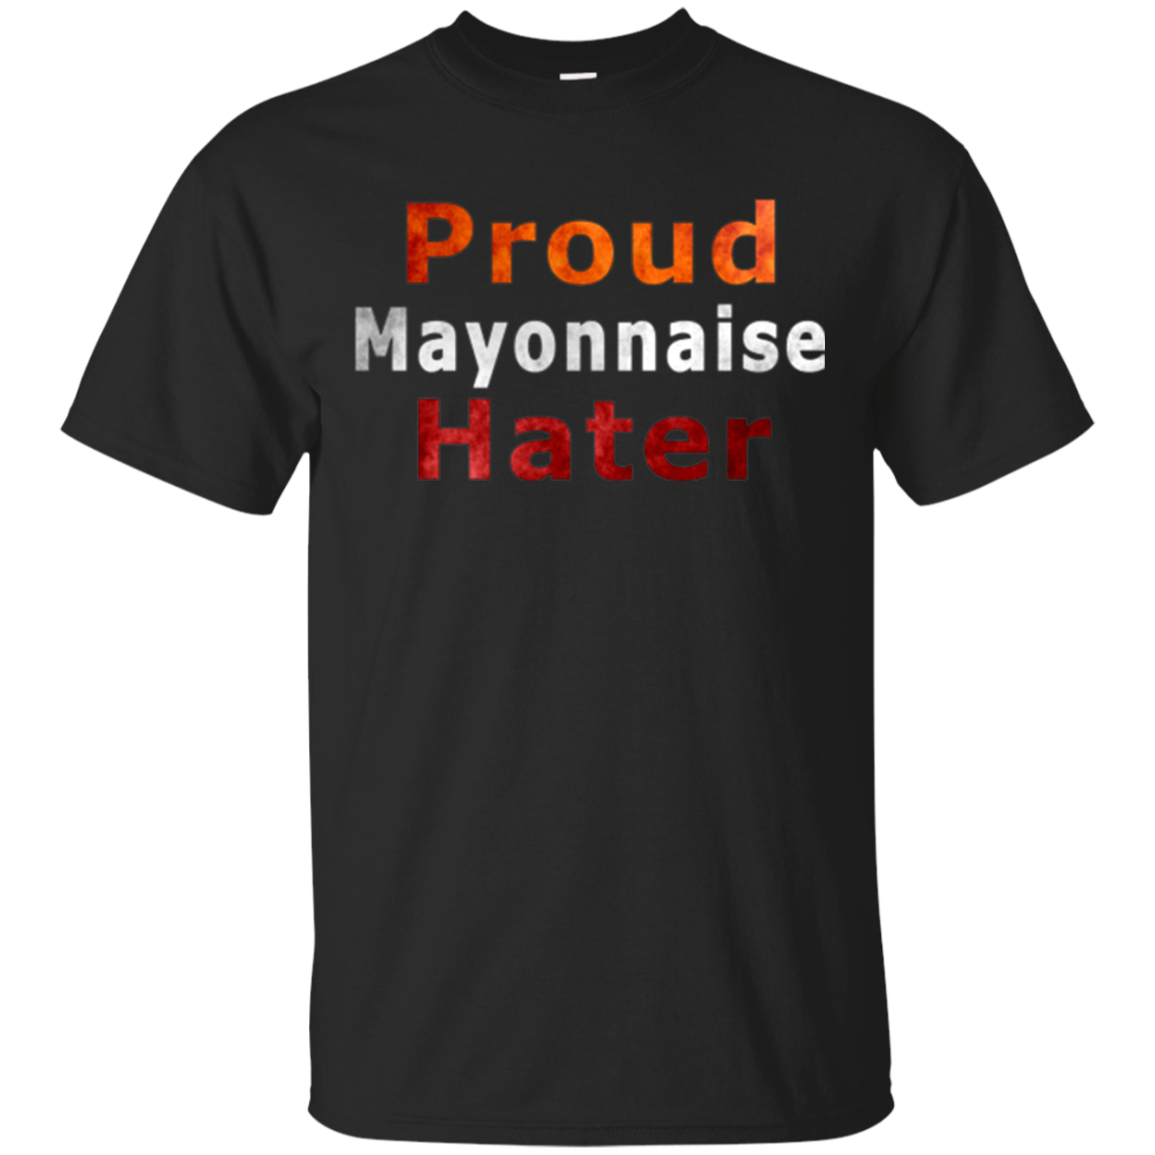 I Hate Mayonnaise Shirt Funny Proud Mayonnaise Hater tshir